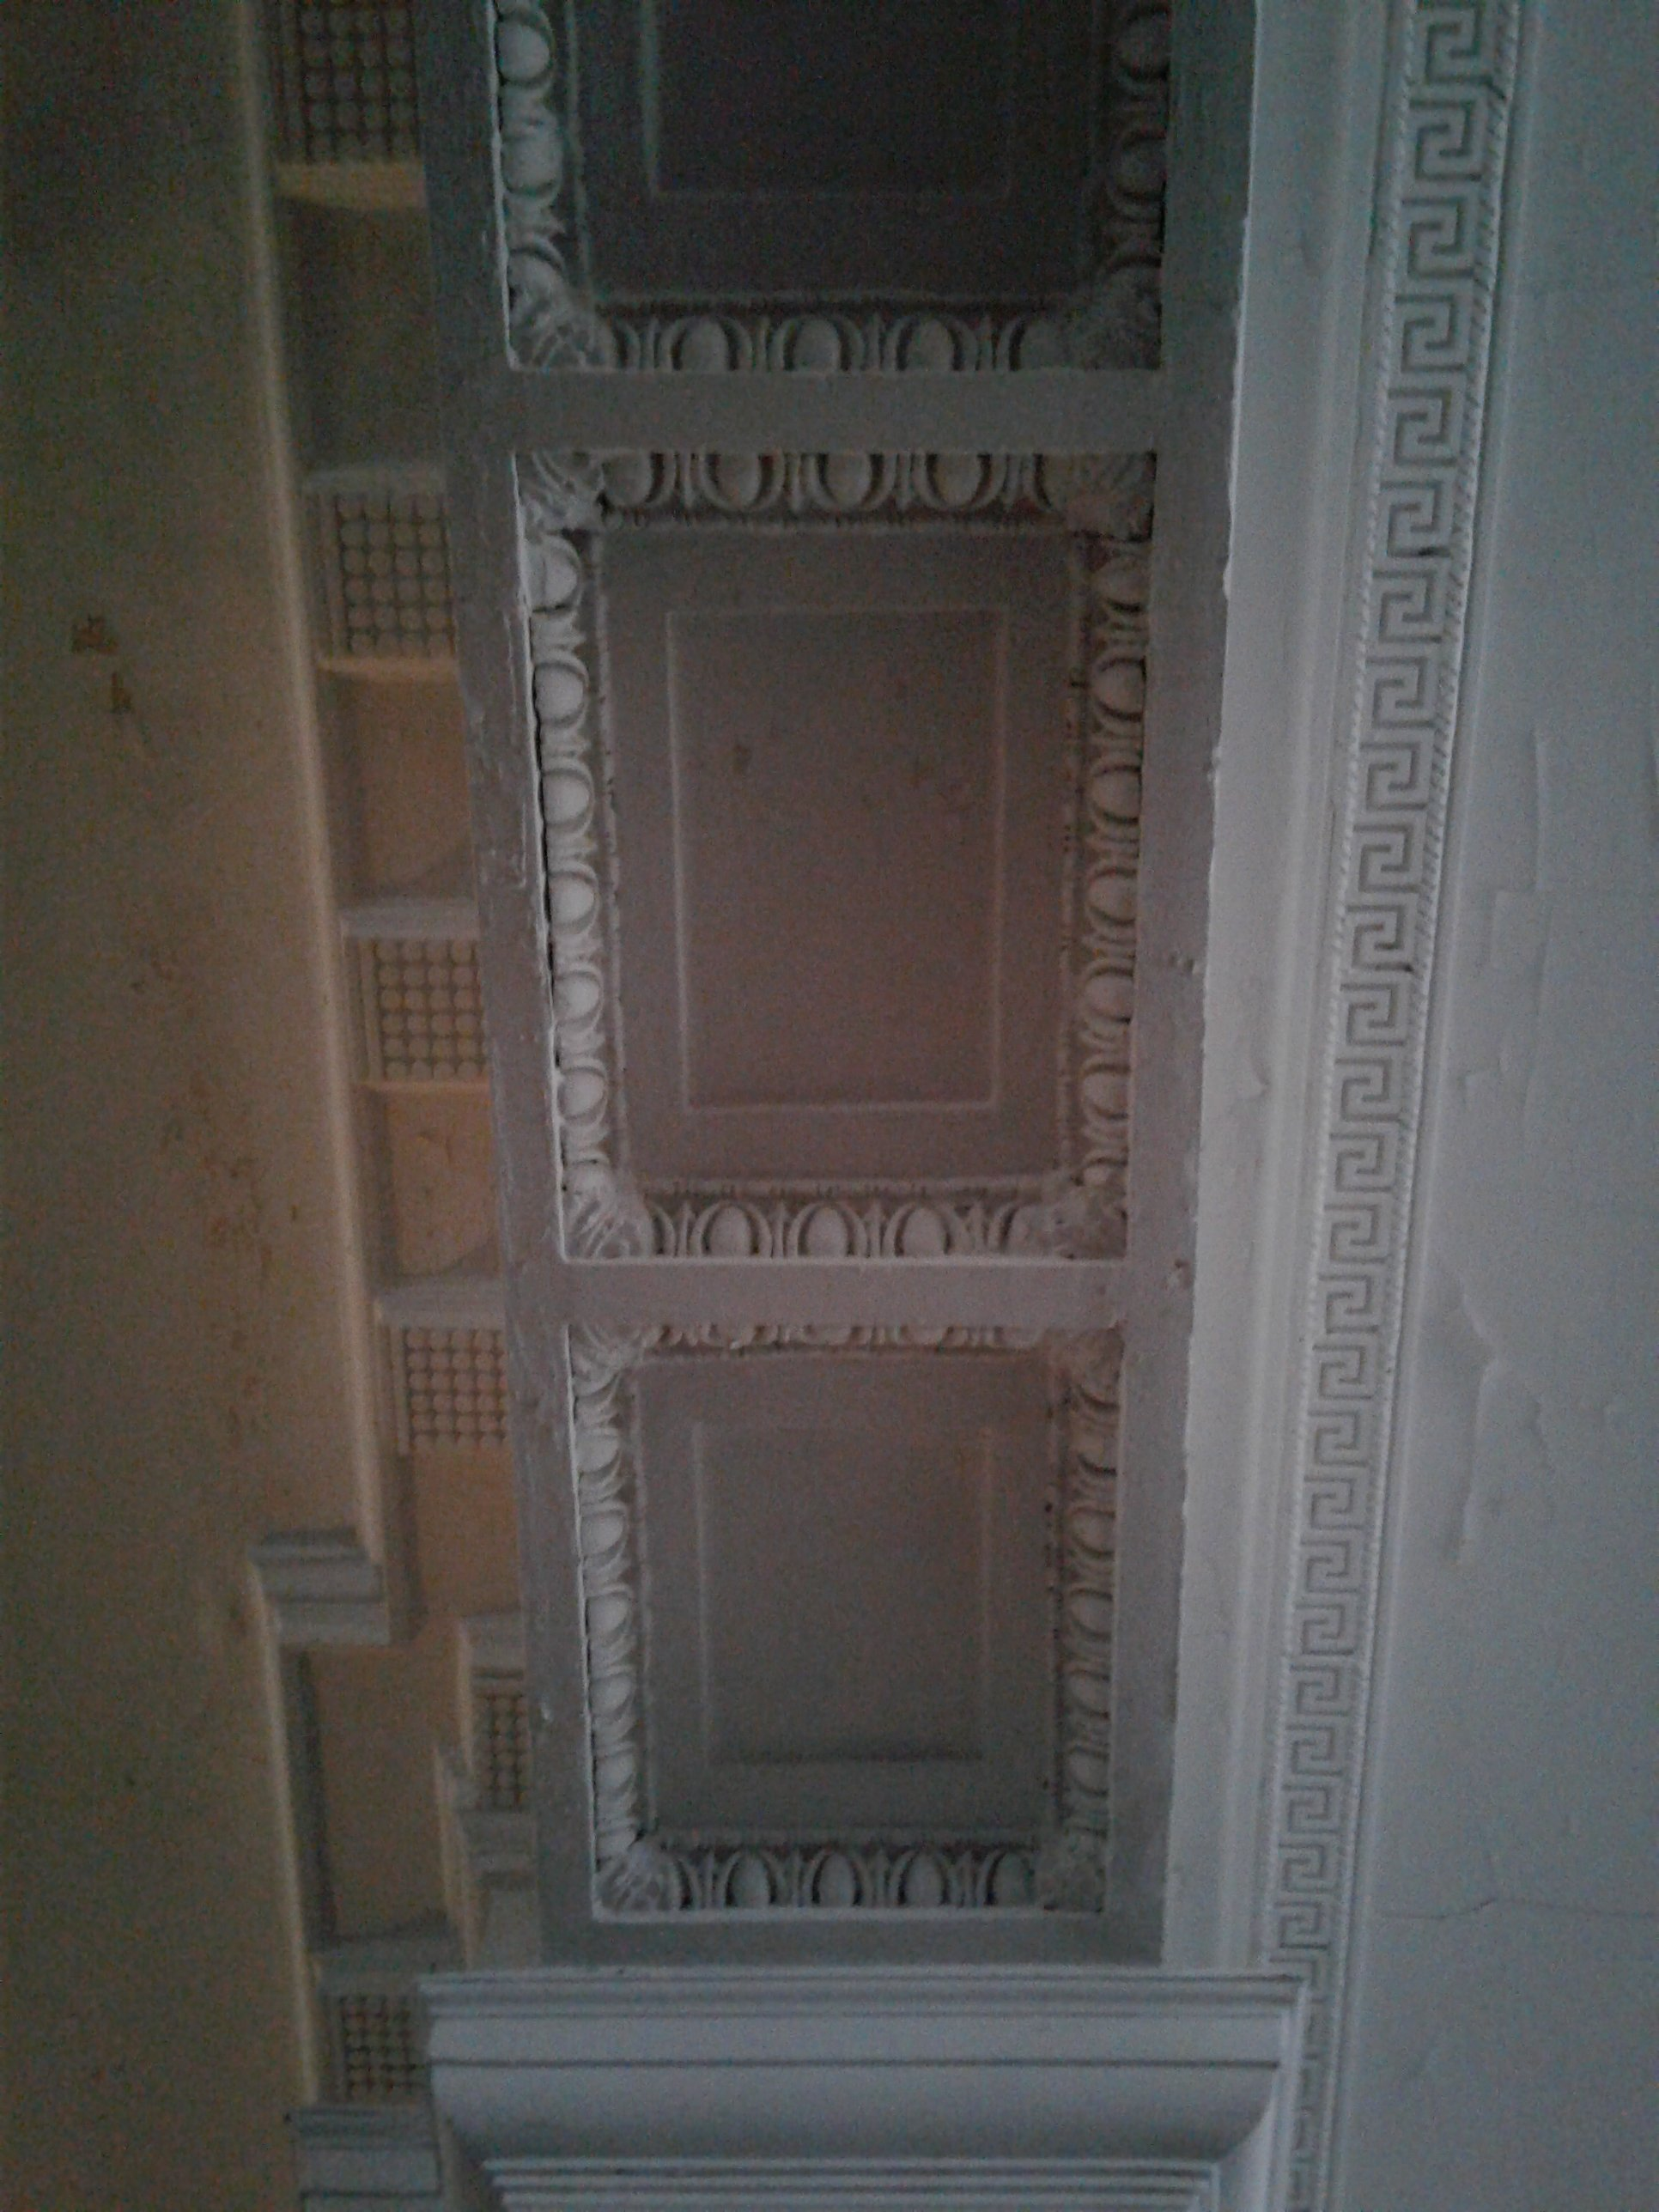 Molding along ceiling panels, Molding consists of Egg and Dart, Bead and Dart, Greek Fret, and Dentil in Historic Jones Memorial Library.